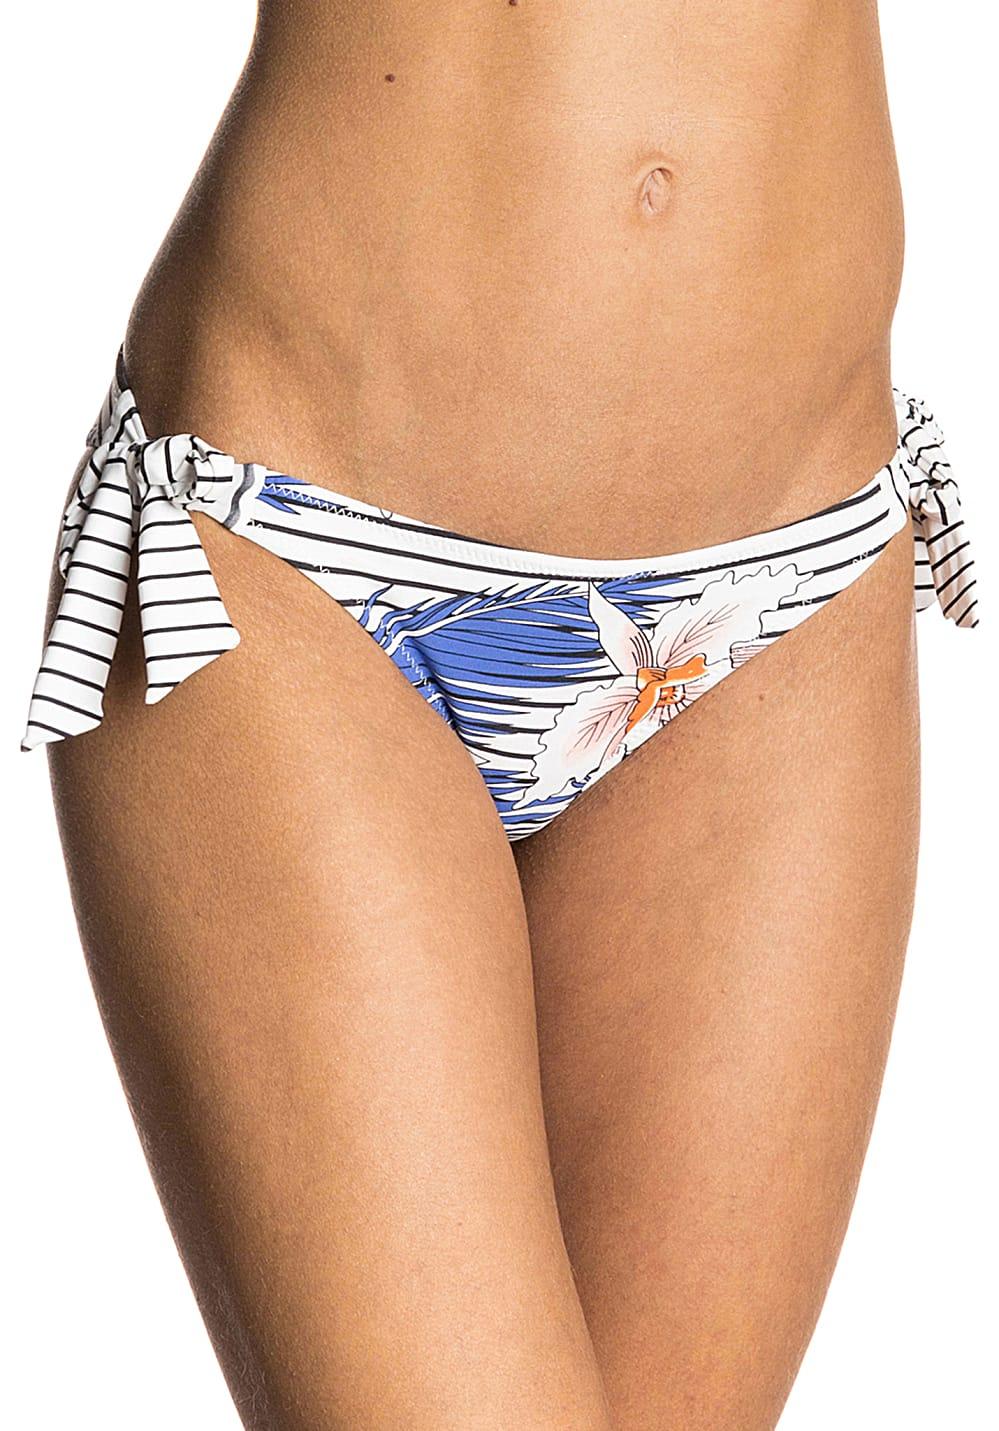 Bademode - Rip Curl Hot Shot Cheeky Revo Bikini Hose für Damen Weiß  - Onlineshop Planet Sports